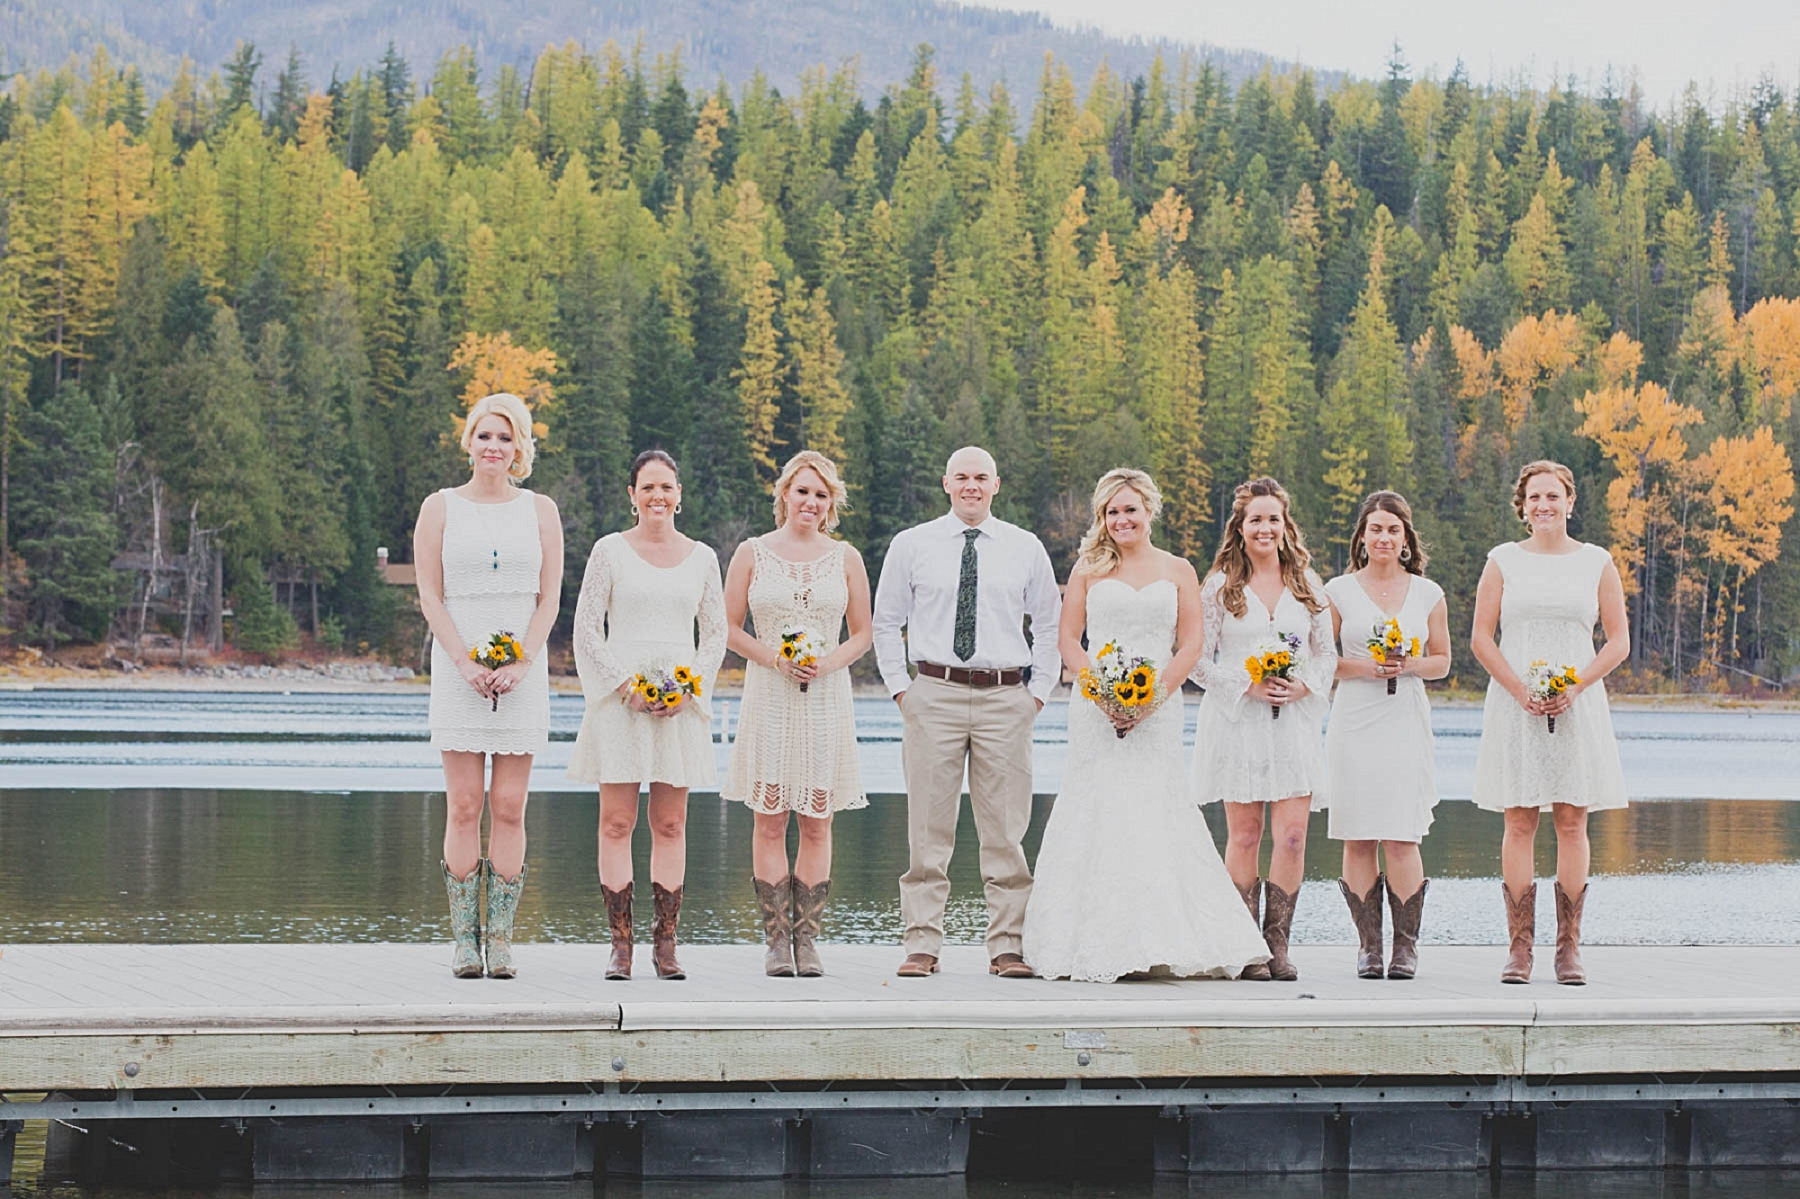 Jennifer_Mooney_photo_glacier_outdoor_center_wedding_montana_fall_elegant_rustic_romantic-100.jpg